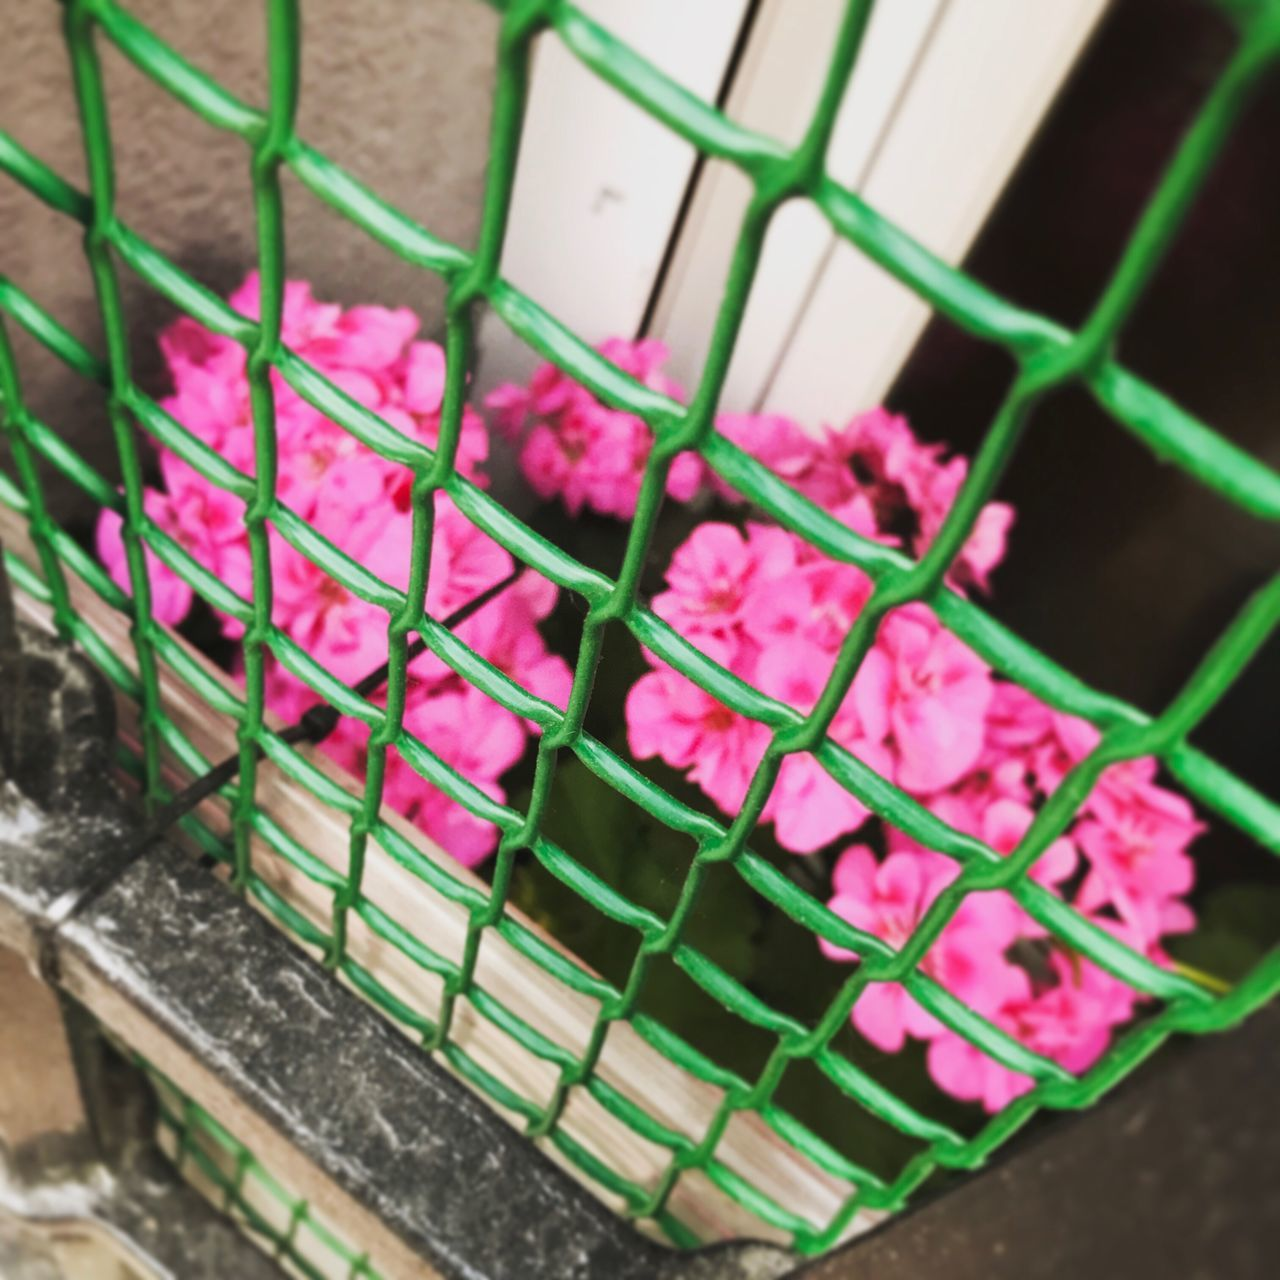 Pink Color High Angle View Metal Metal Grate Green Color Cage No People Day City Plants Green madrid spain